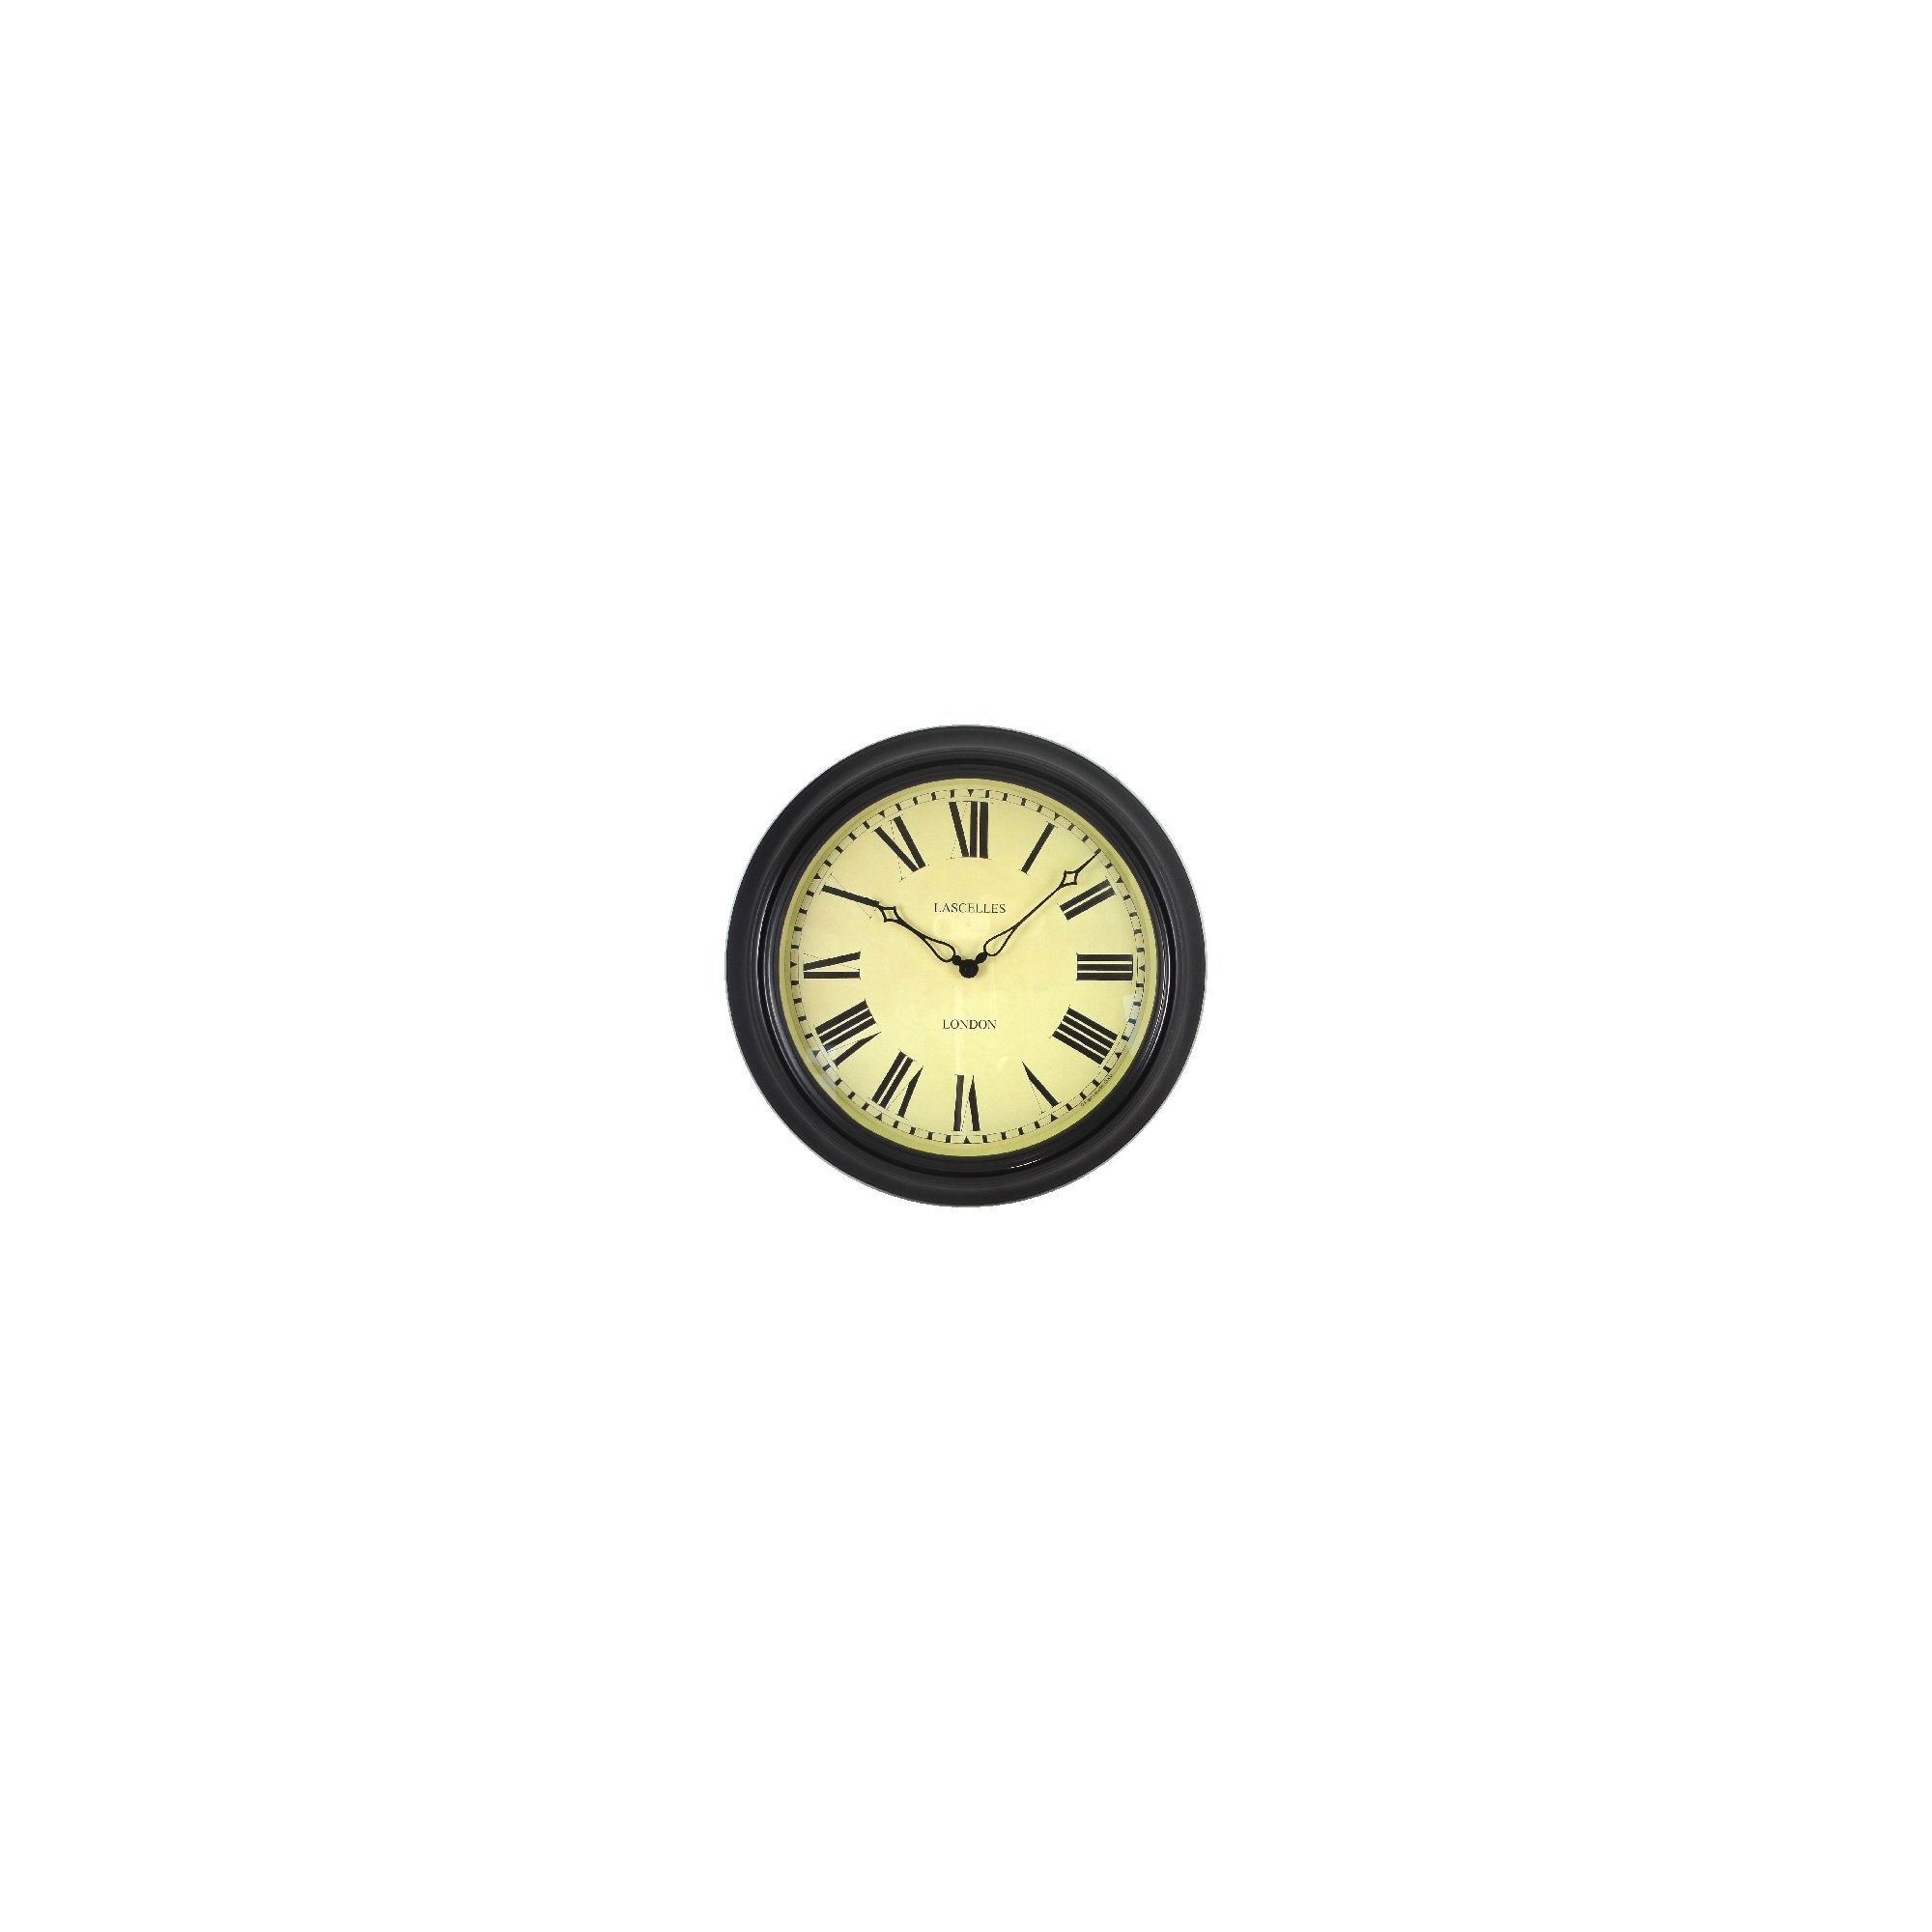 Roger lascelles wall clocks gallery home wall decoration ideas roger lascelles radio controlled wall clock silver 12000 wall roger lascelles clocks station clock in black amipublicfo Image collections